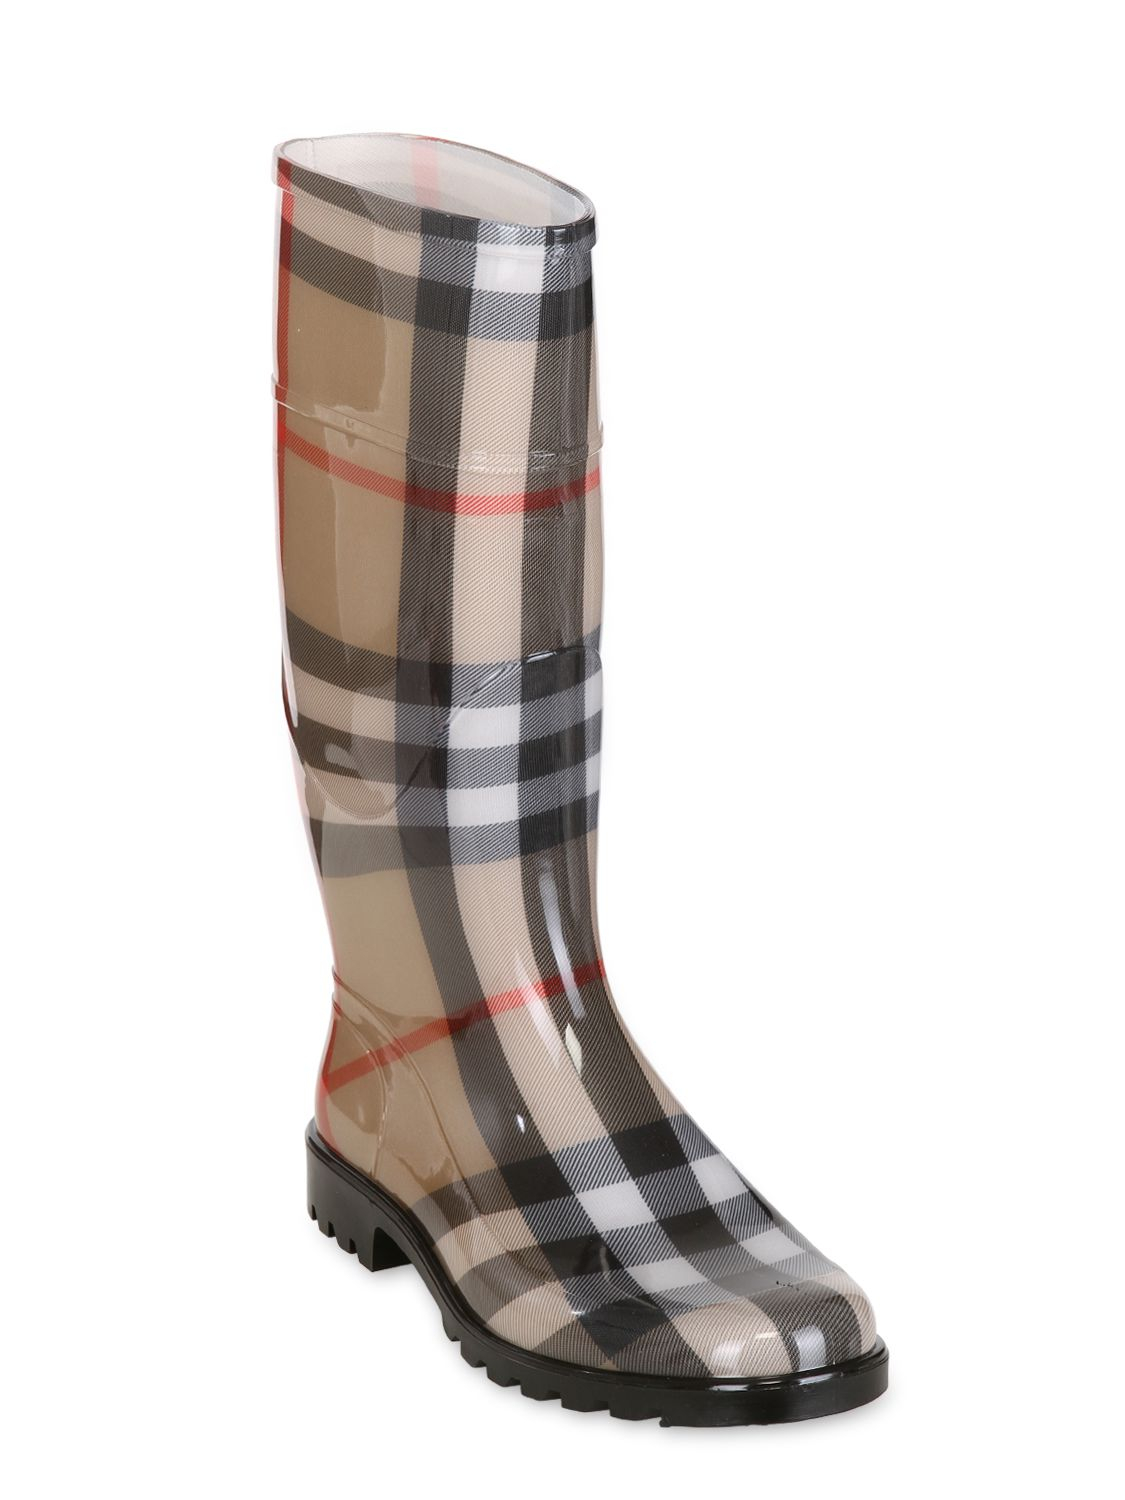 Burberry \'House Check\' Rain Boots in Natural | Lyst